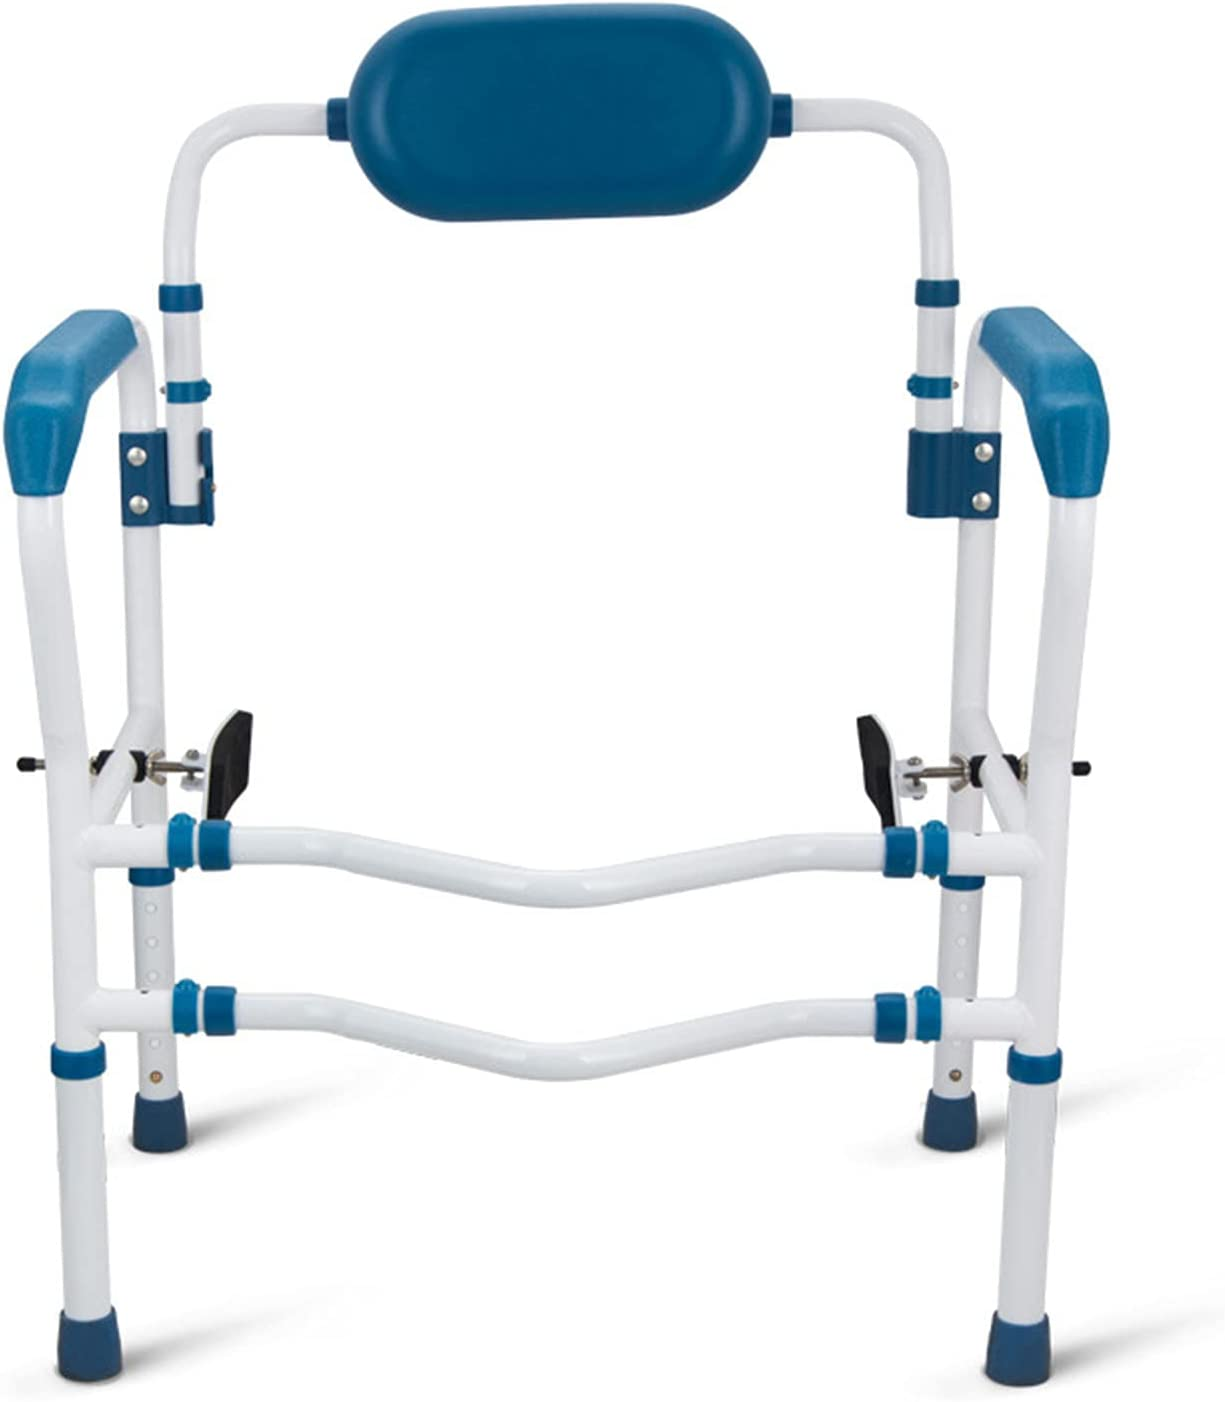 Toilet Frame 25% OFF Super beauty product restock quality top Bathroom Safety Rail Health Equi Home Care